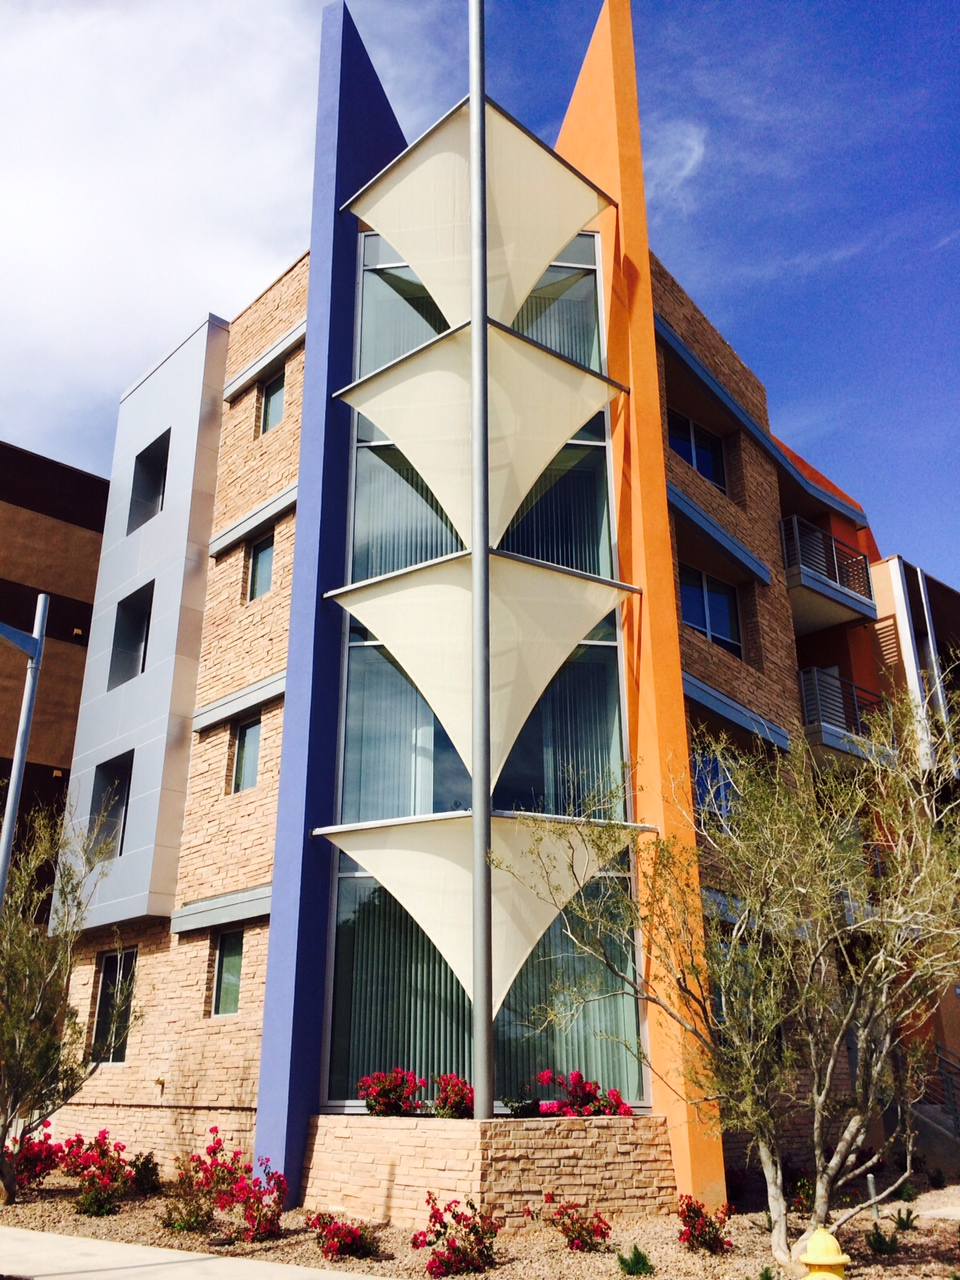 Sky Song Apartments - AZ Shade Design & Consulting LLC